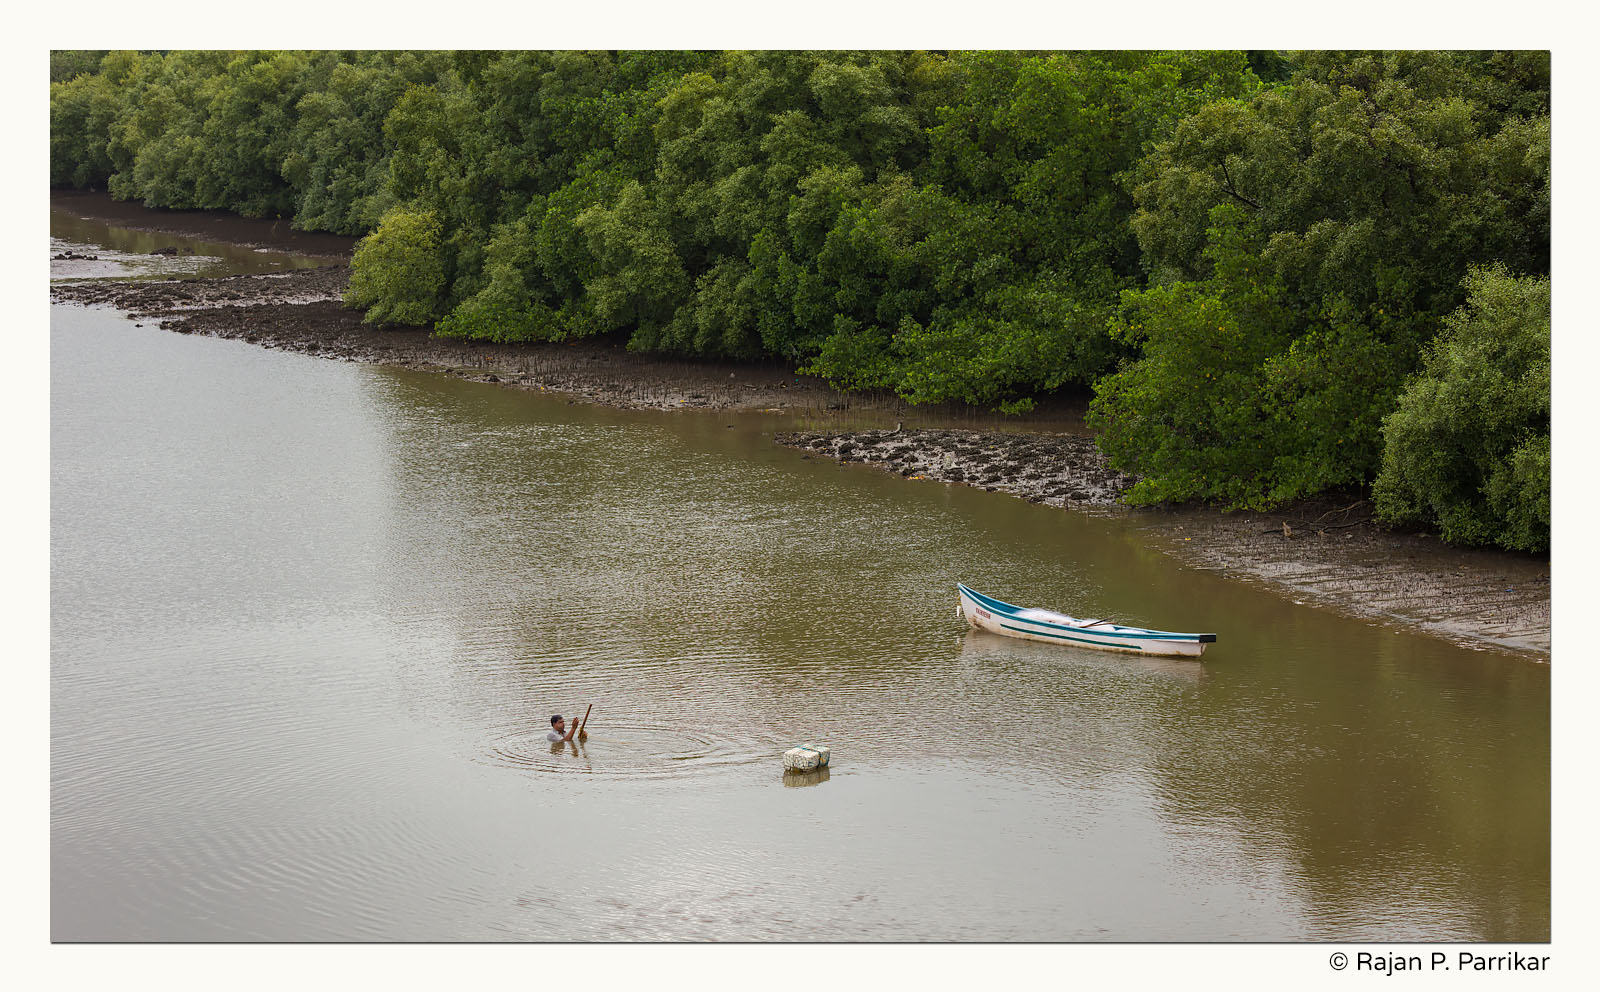 Digging for clams in Nerul river, Goa